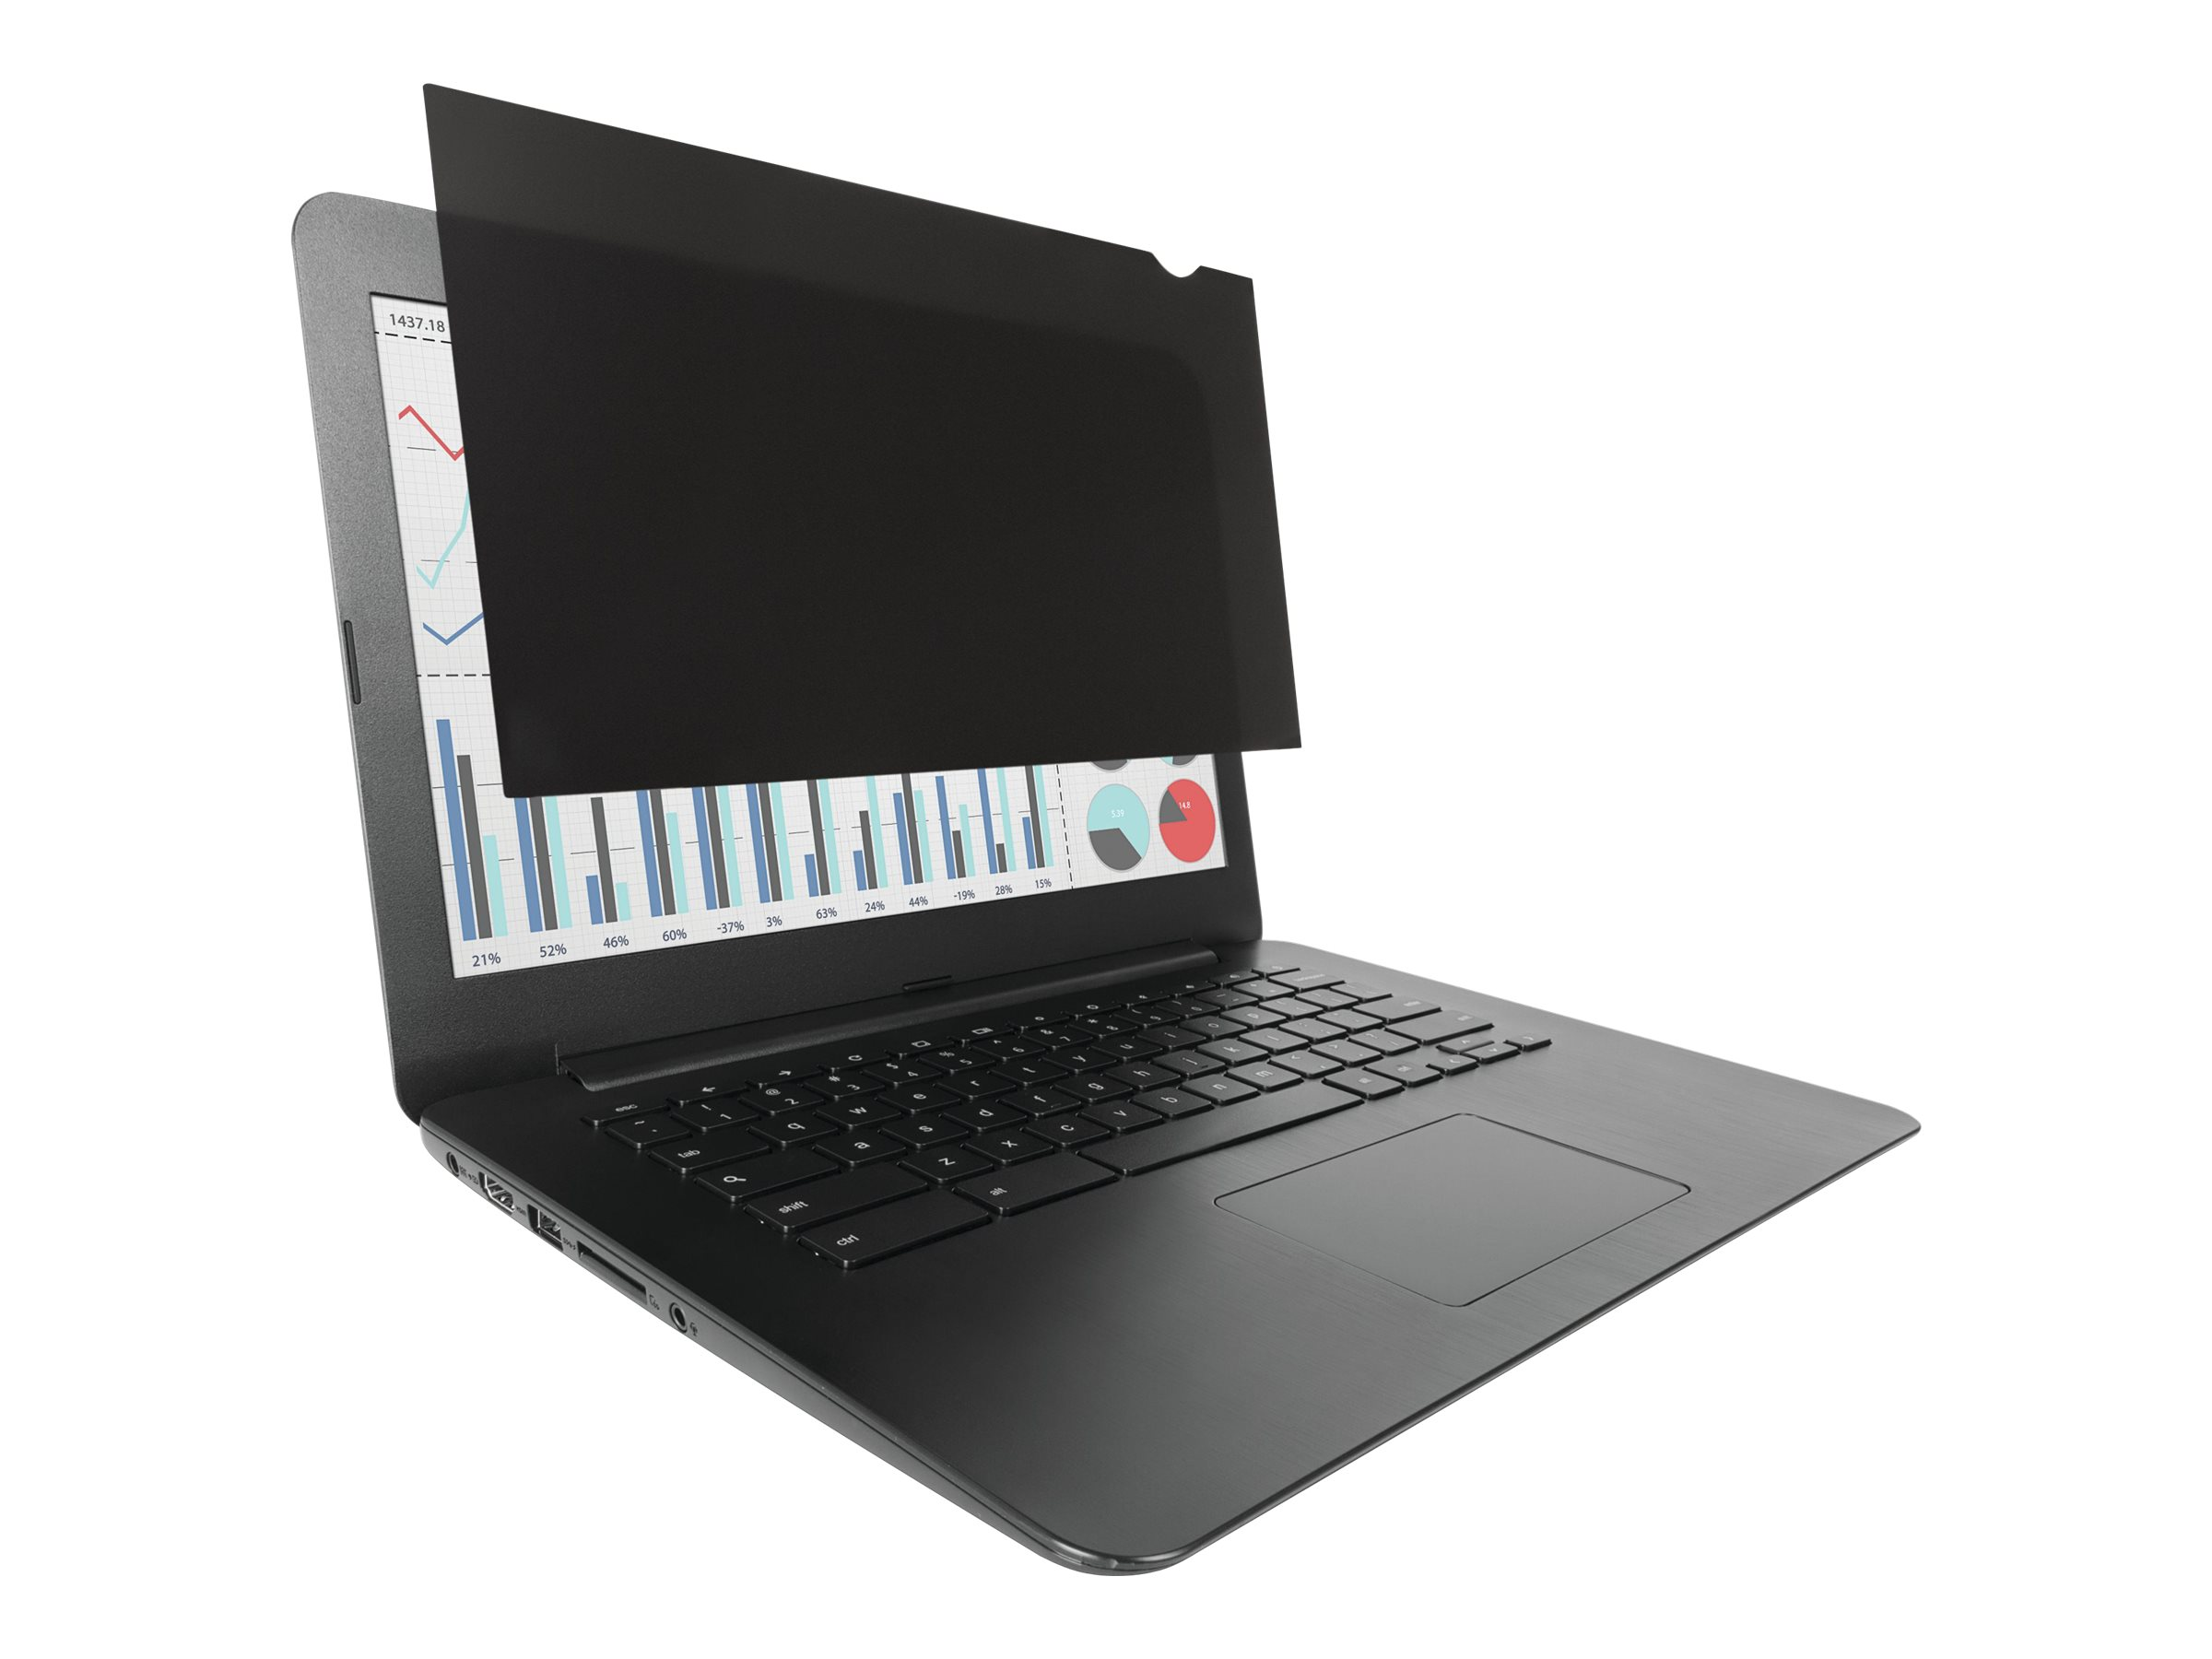 Kensington Laptop Privacy Screen FP140W9 notebook privacy filter